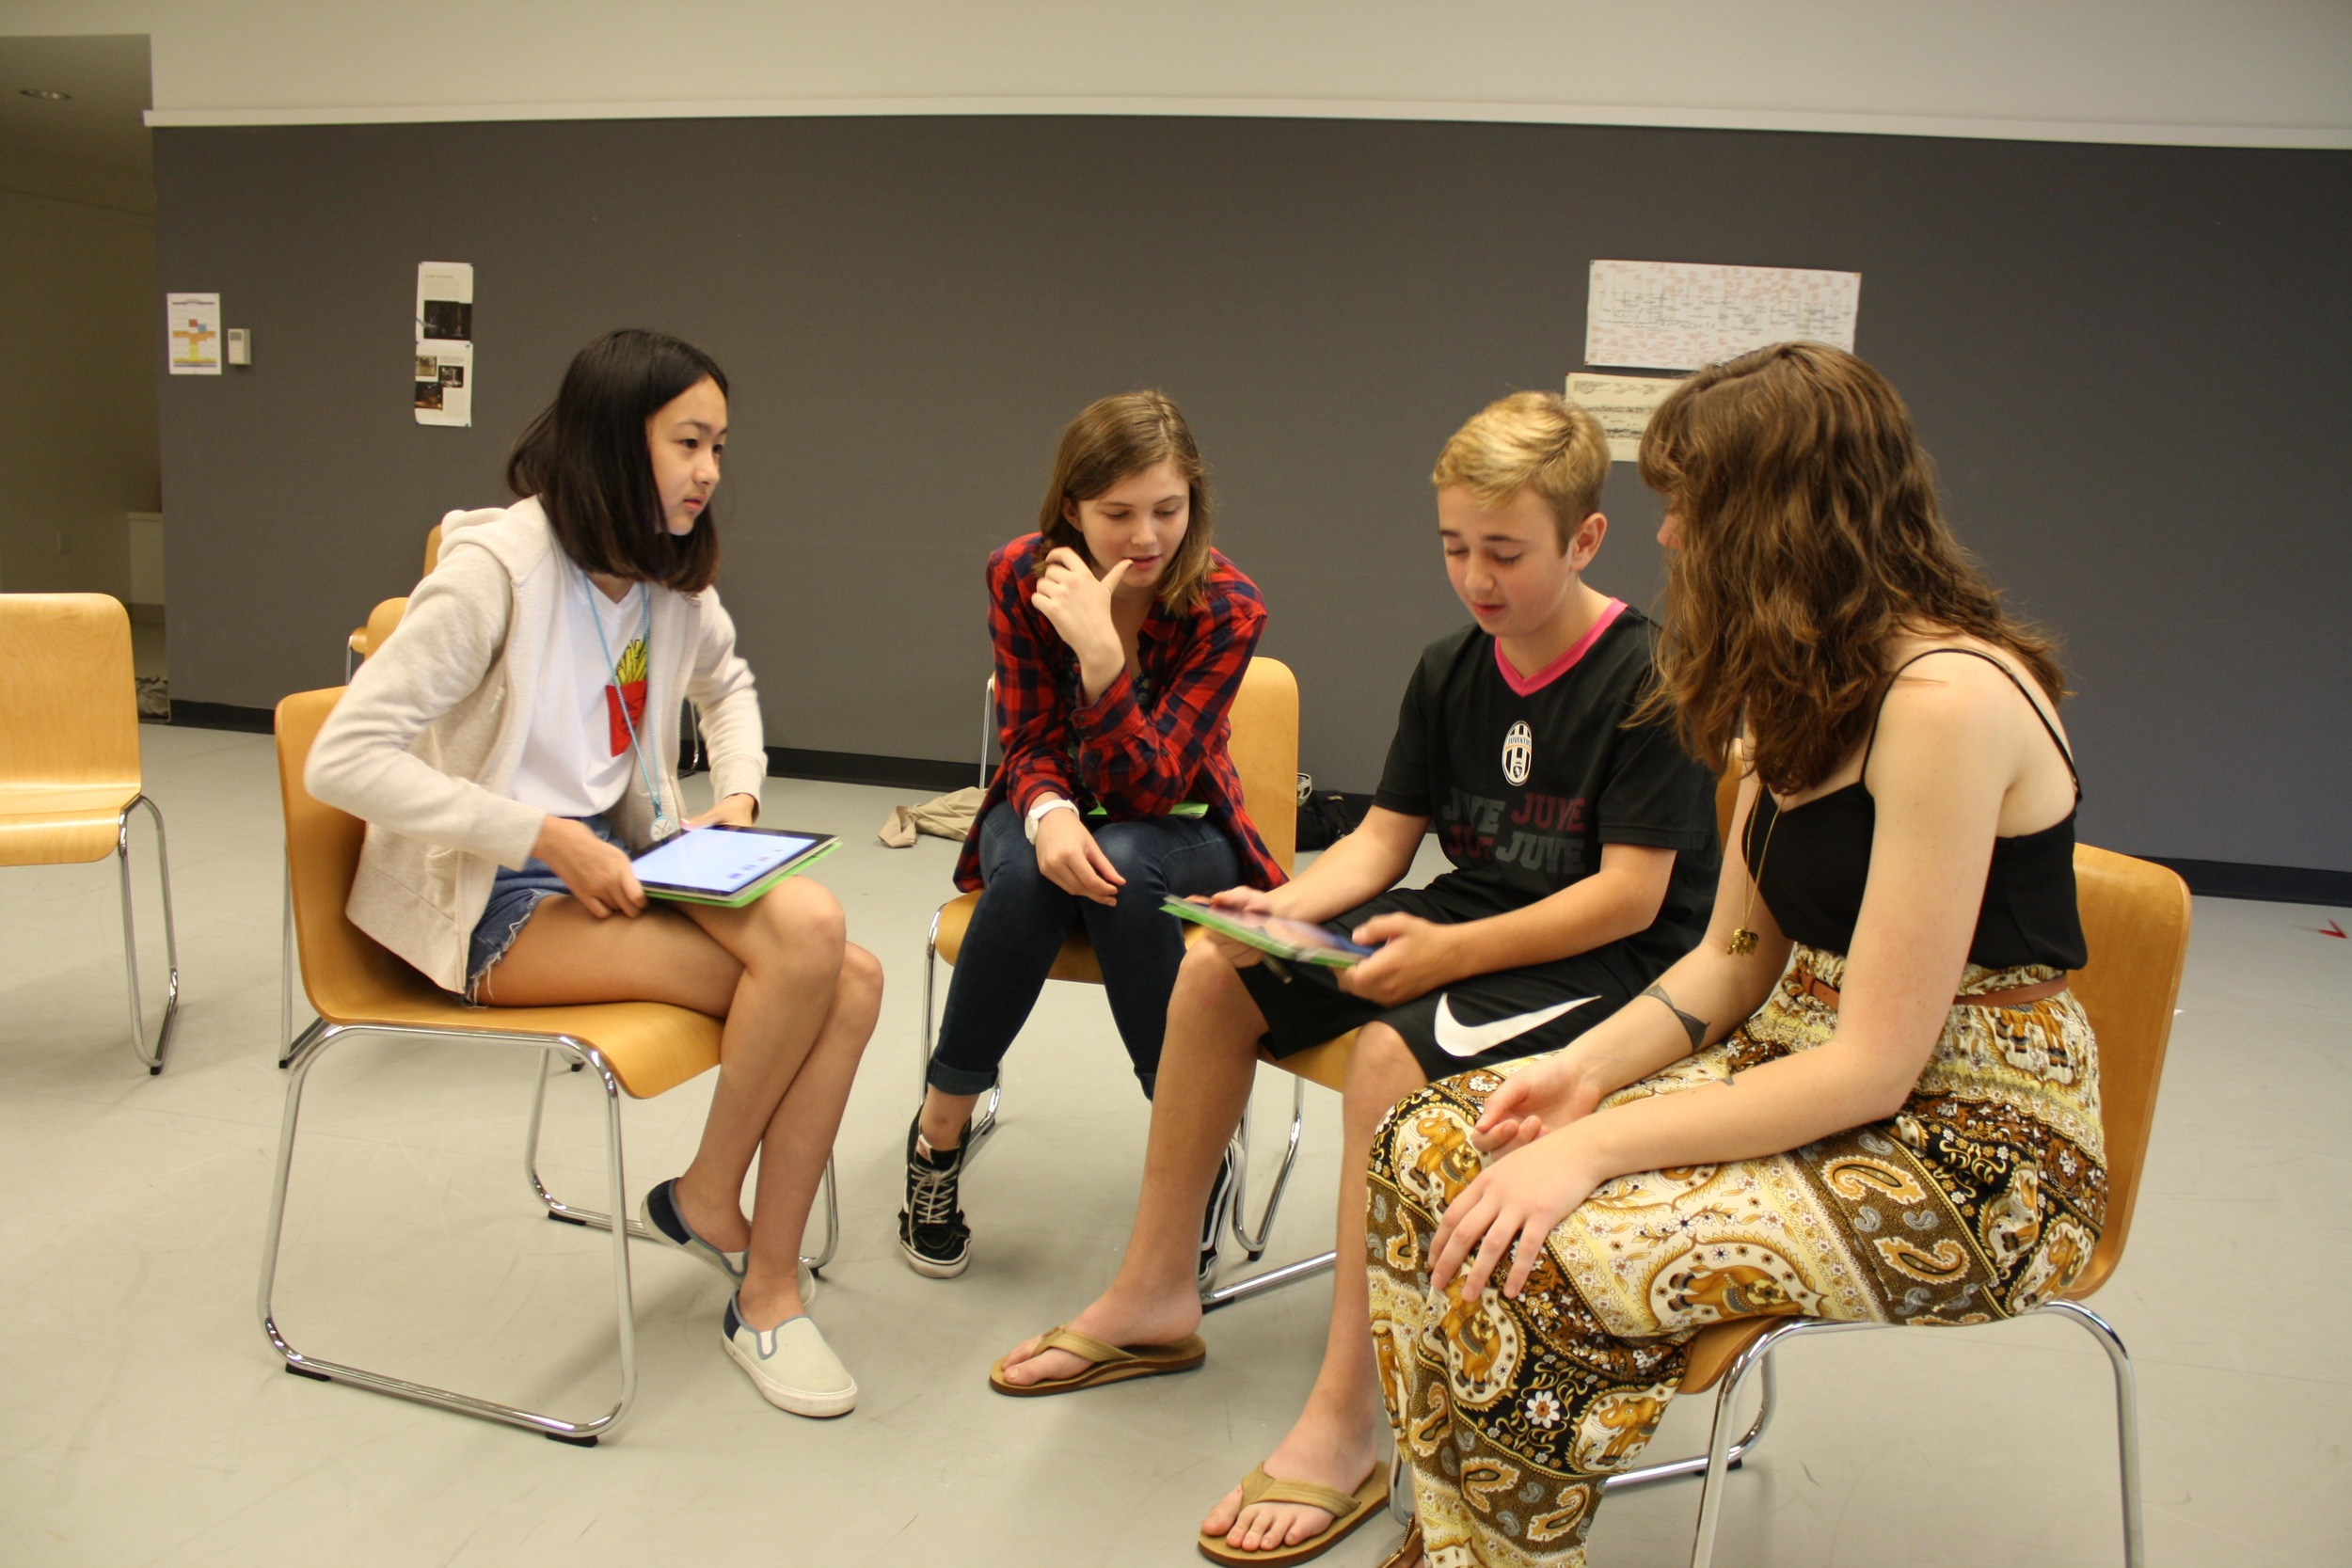 Small group work at the Experimentory